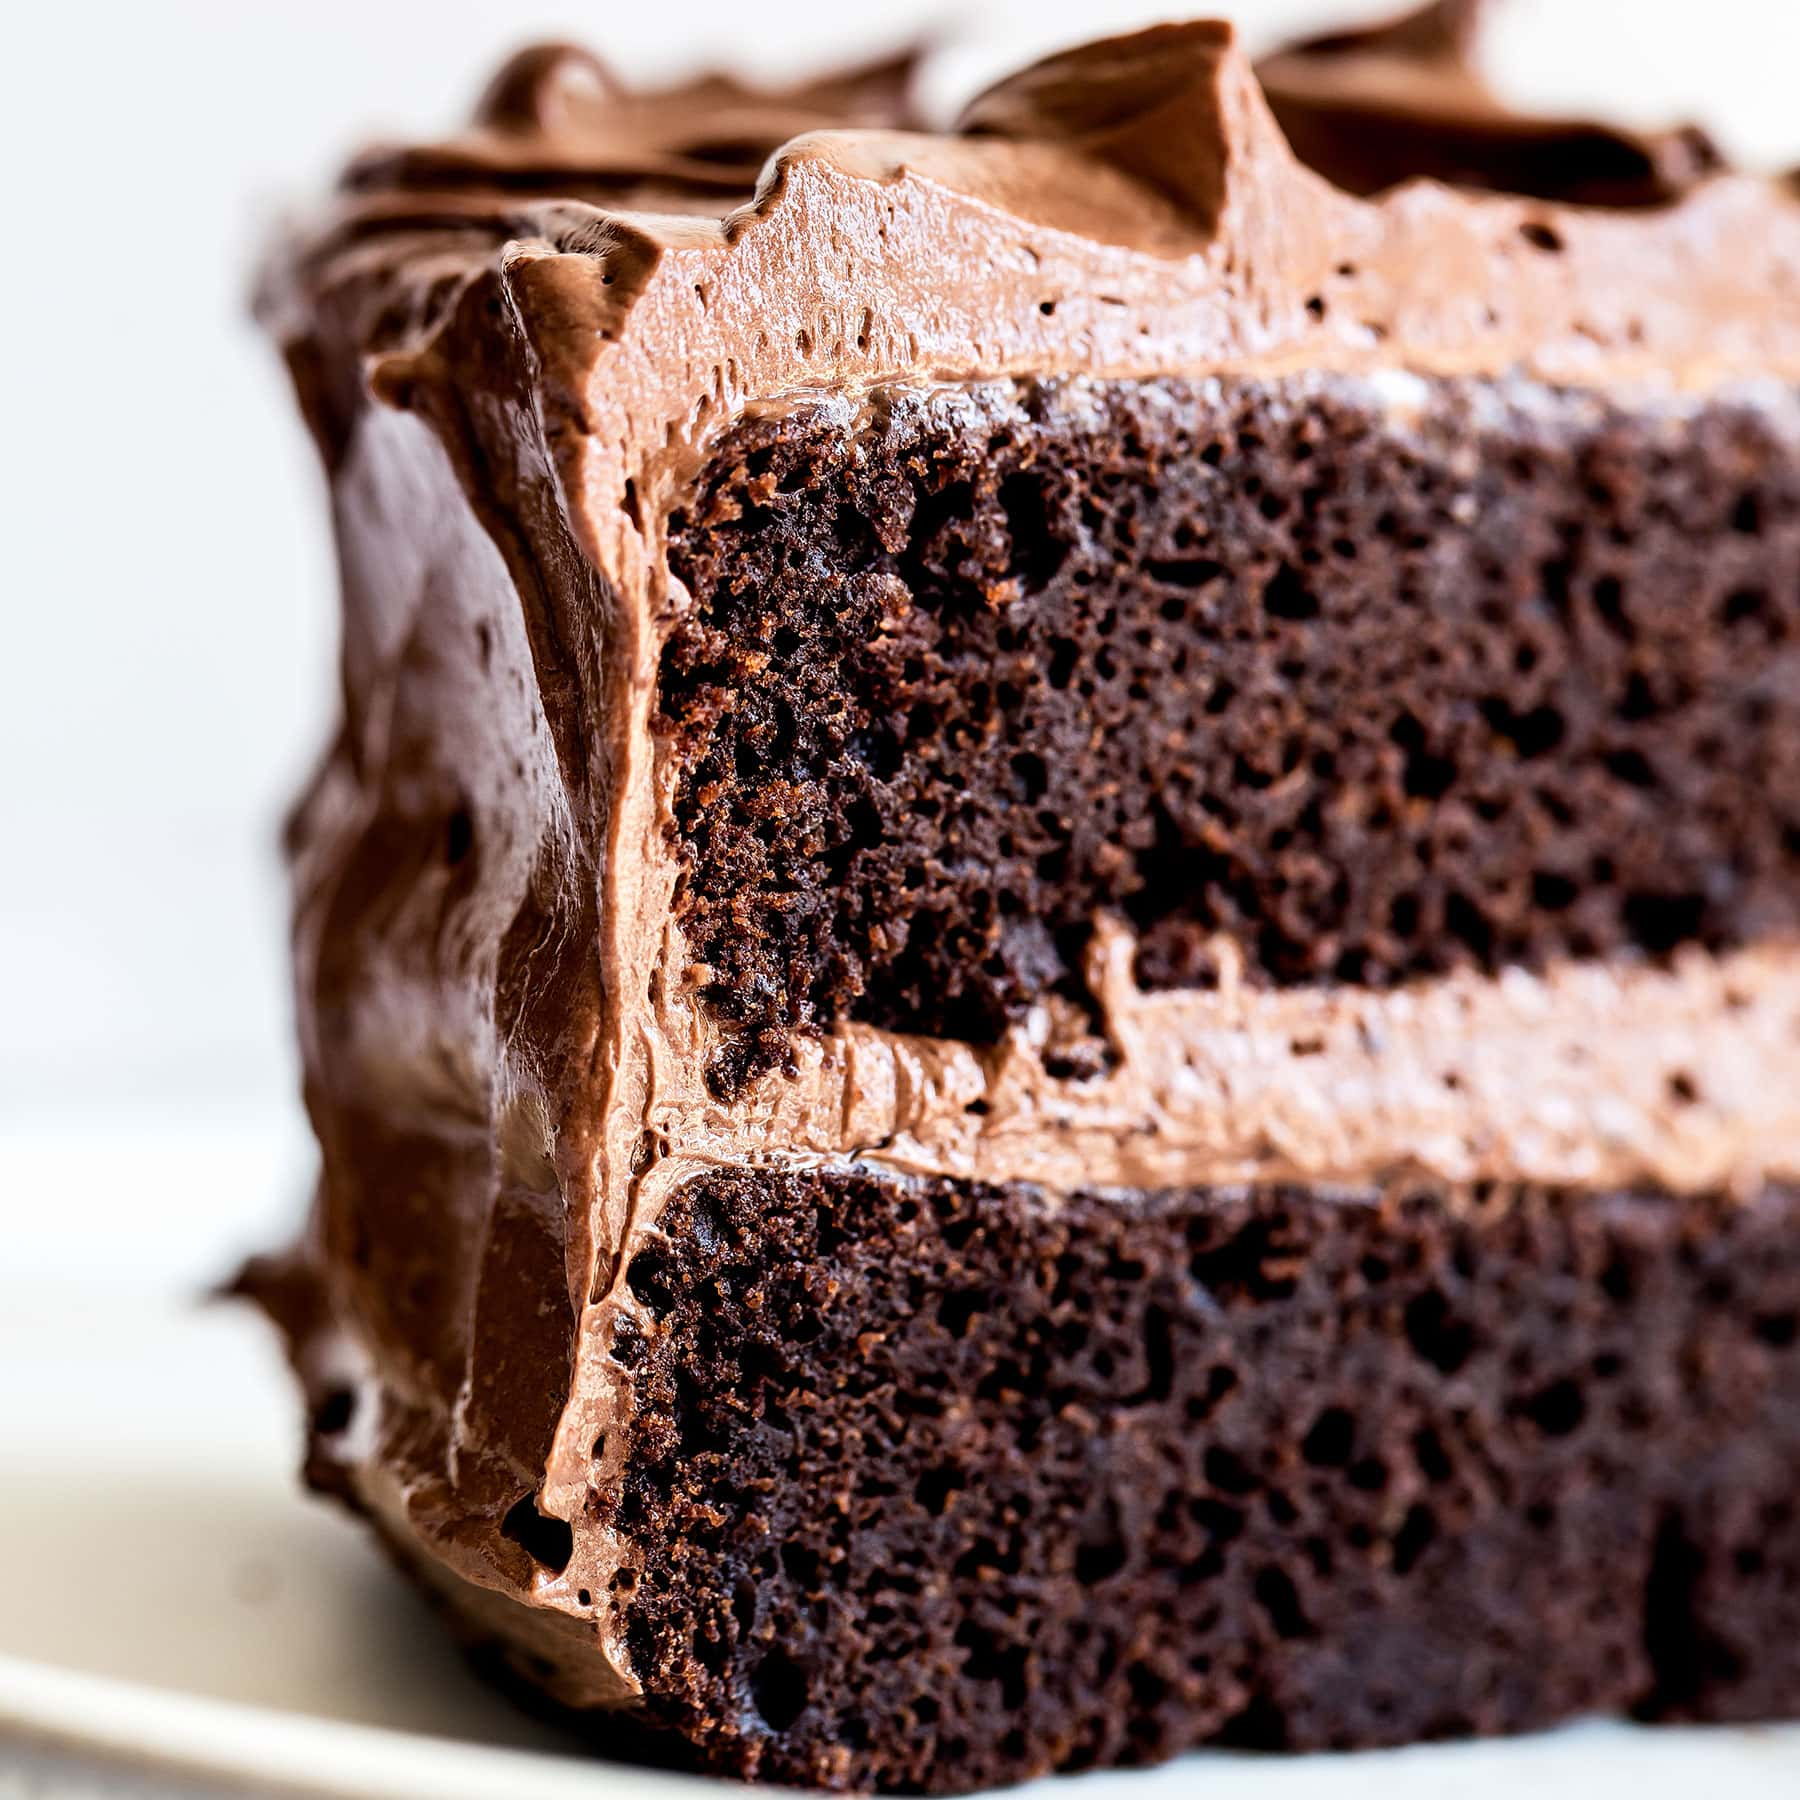 Best Chocolate Cake Handle The Heat